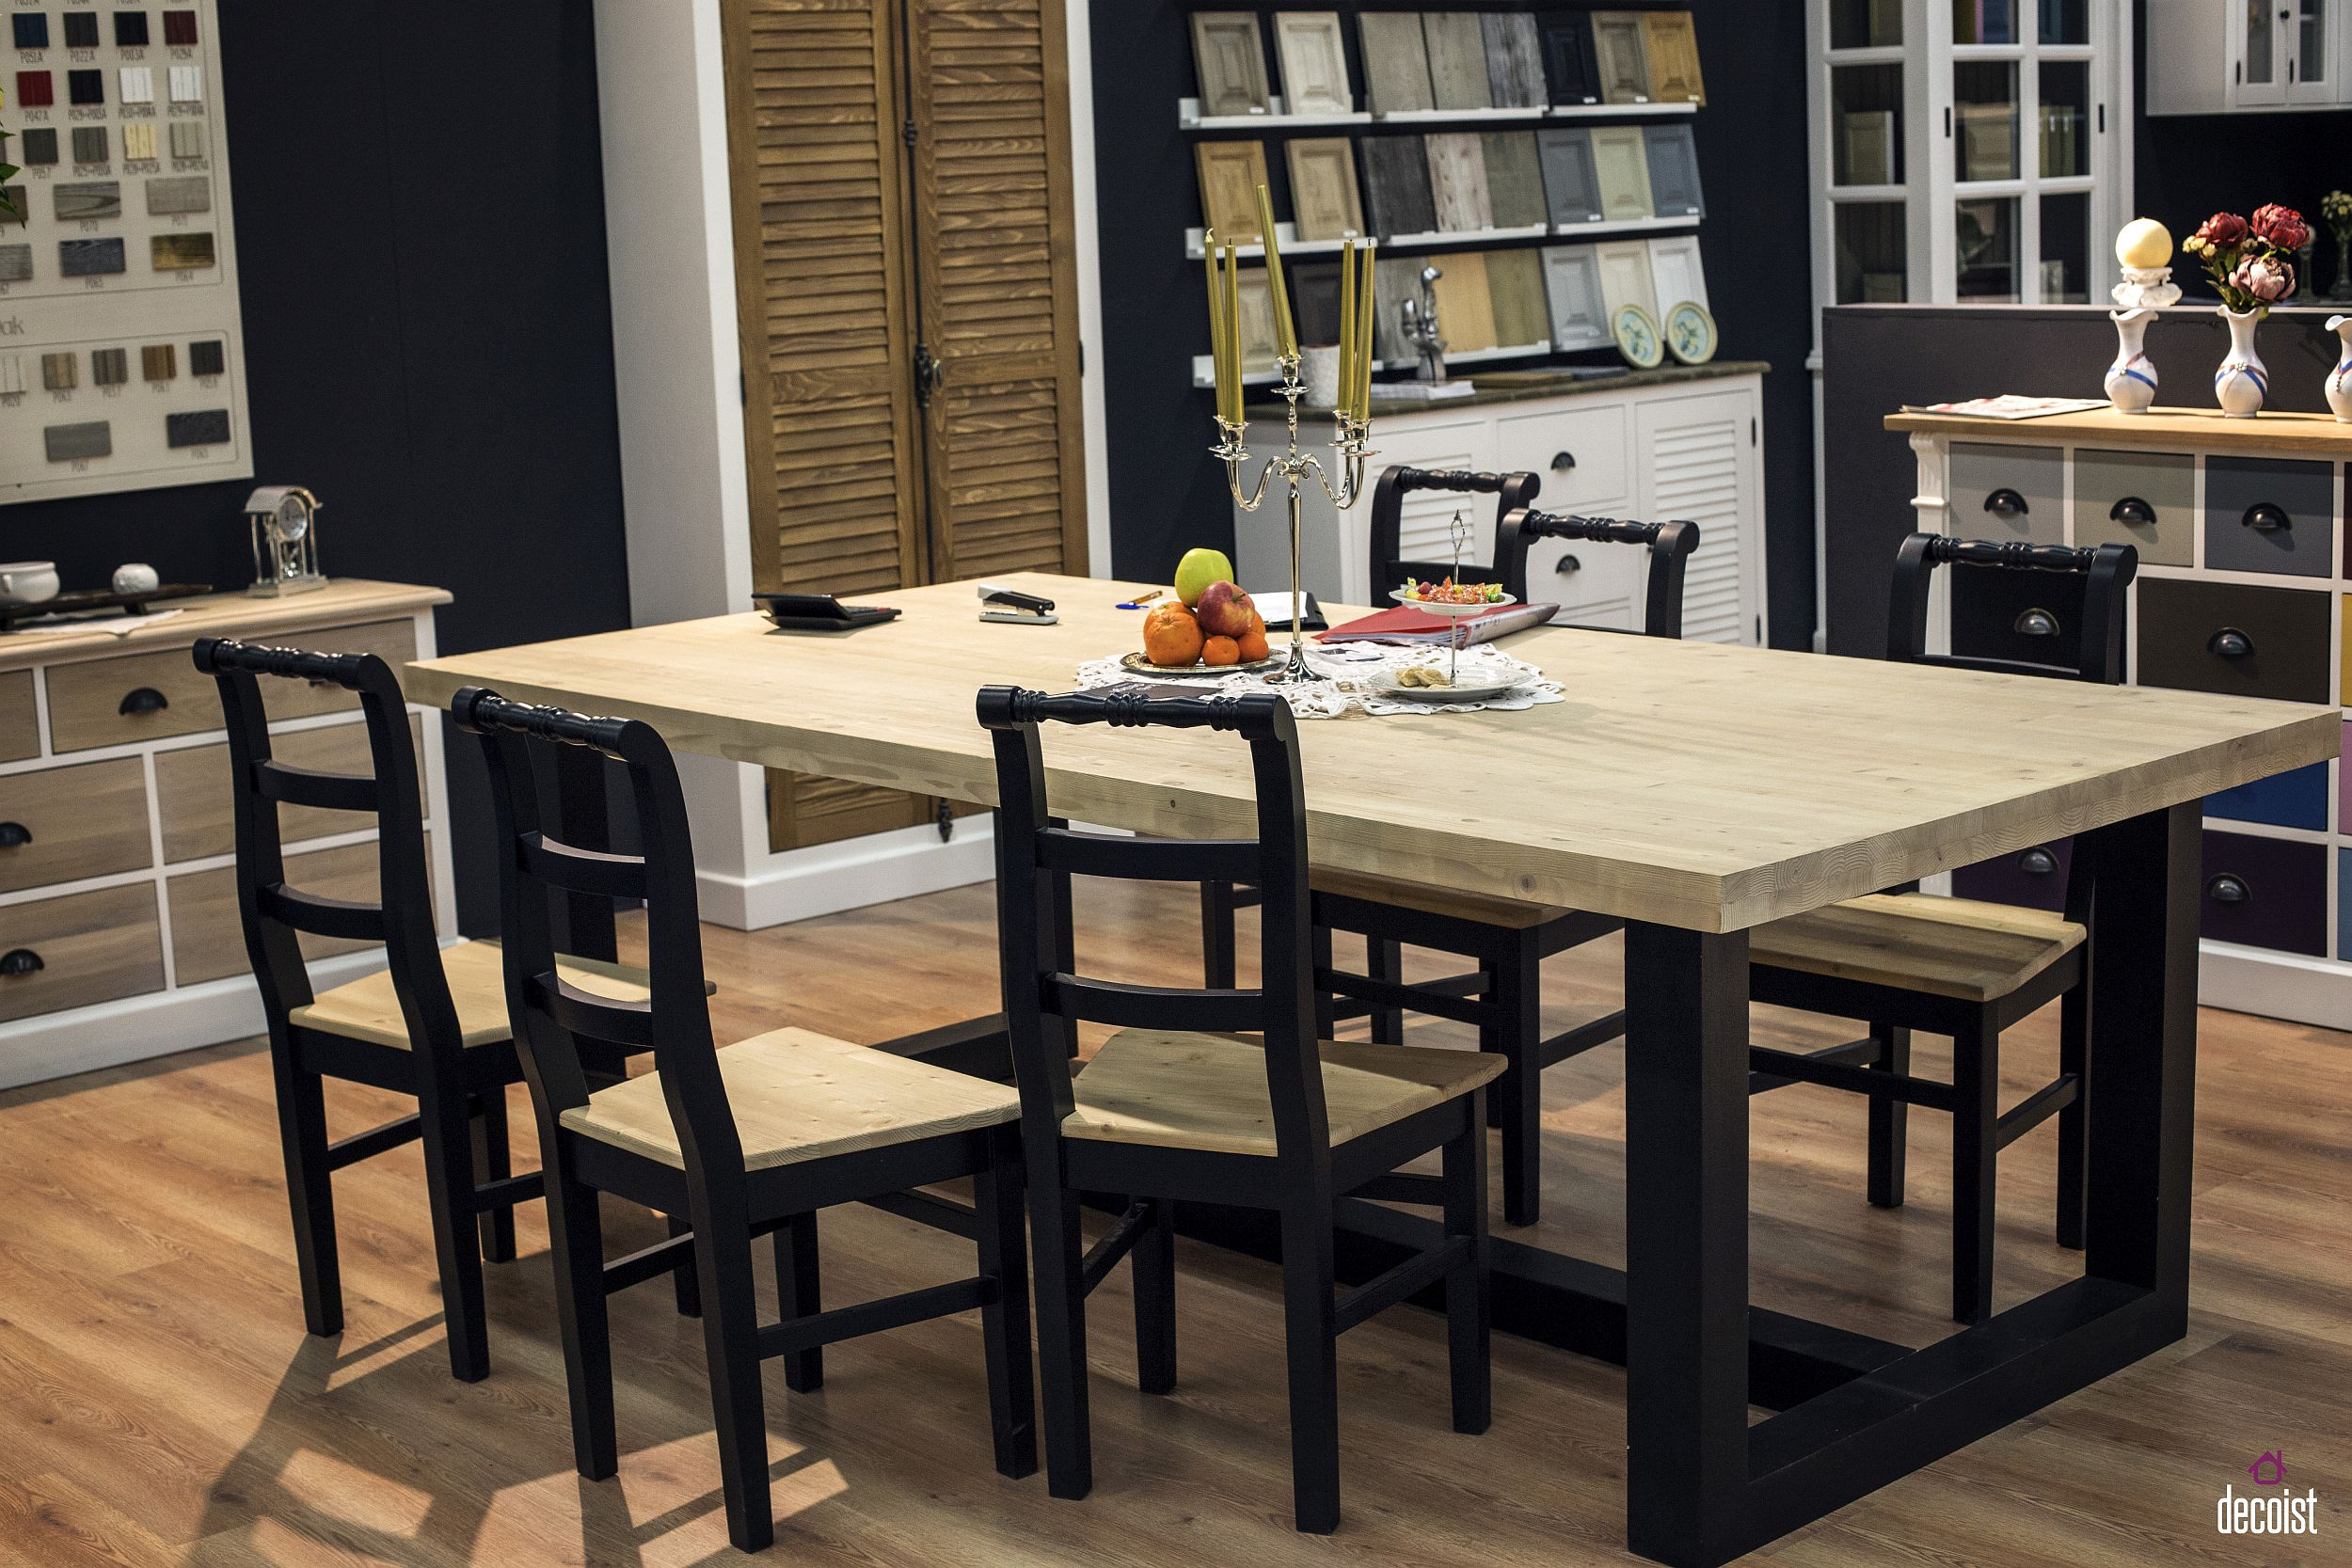 View in gallery clean straight lines give the classic wooden dining table